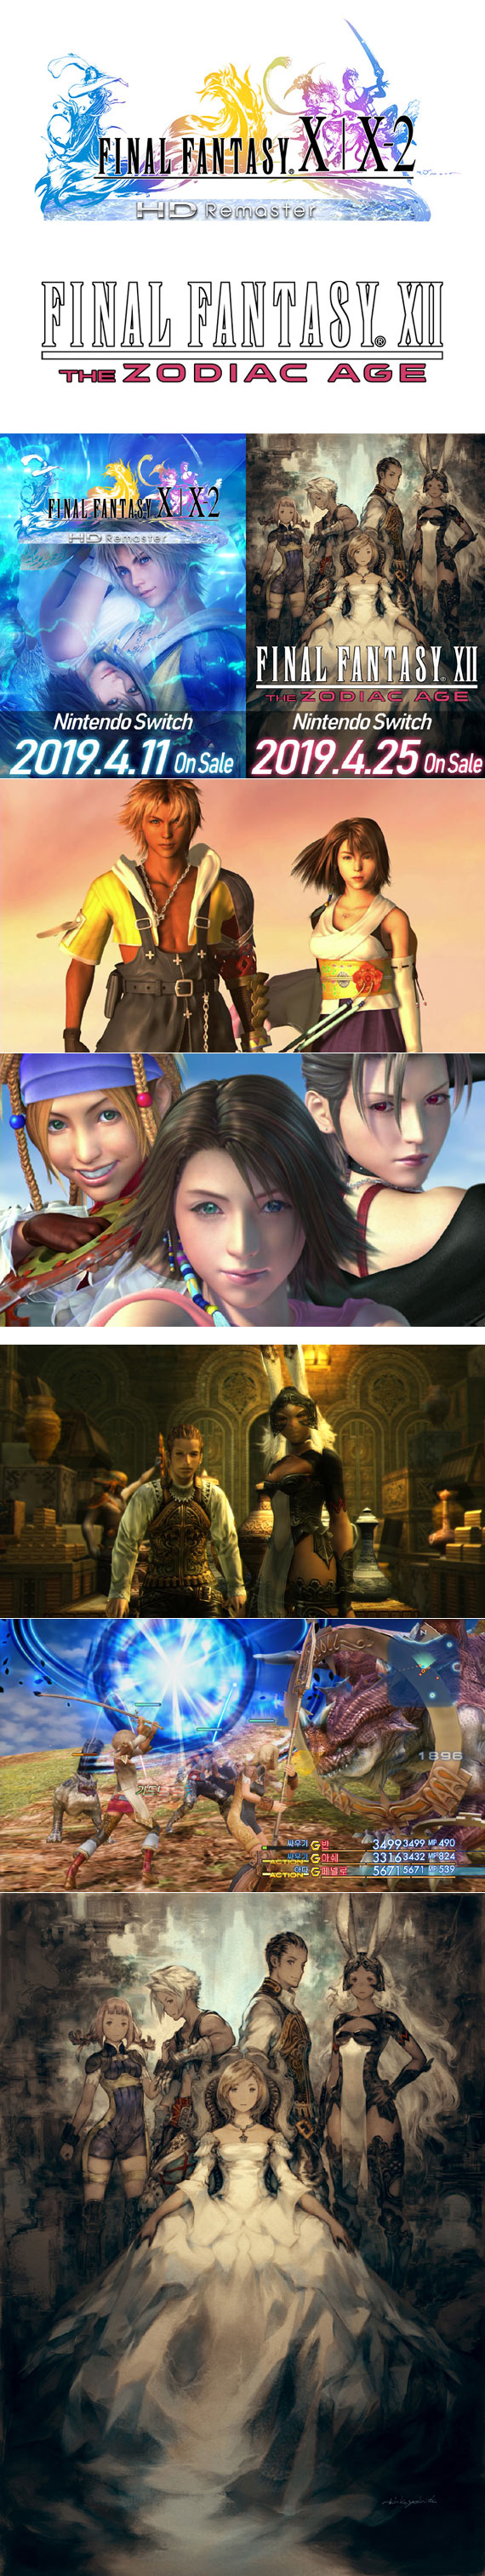 FINAL FANTASY X/X-2 HD Remaster, FINAL FANTASY XII THE ZODIAC AGE 발매